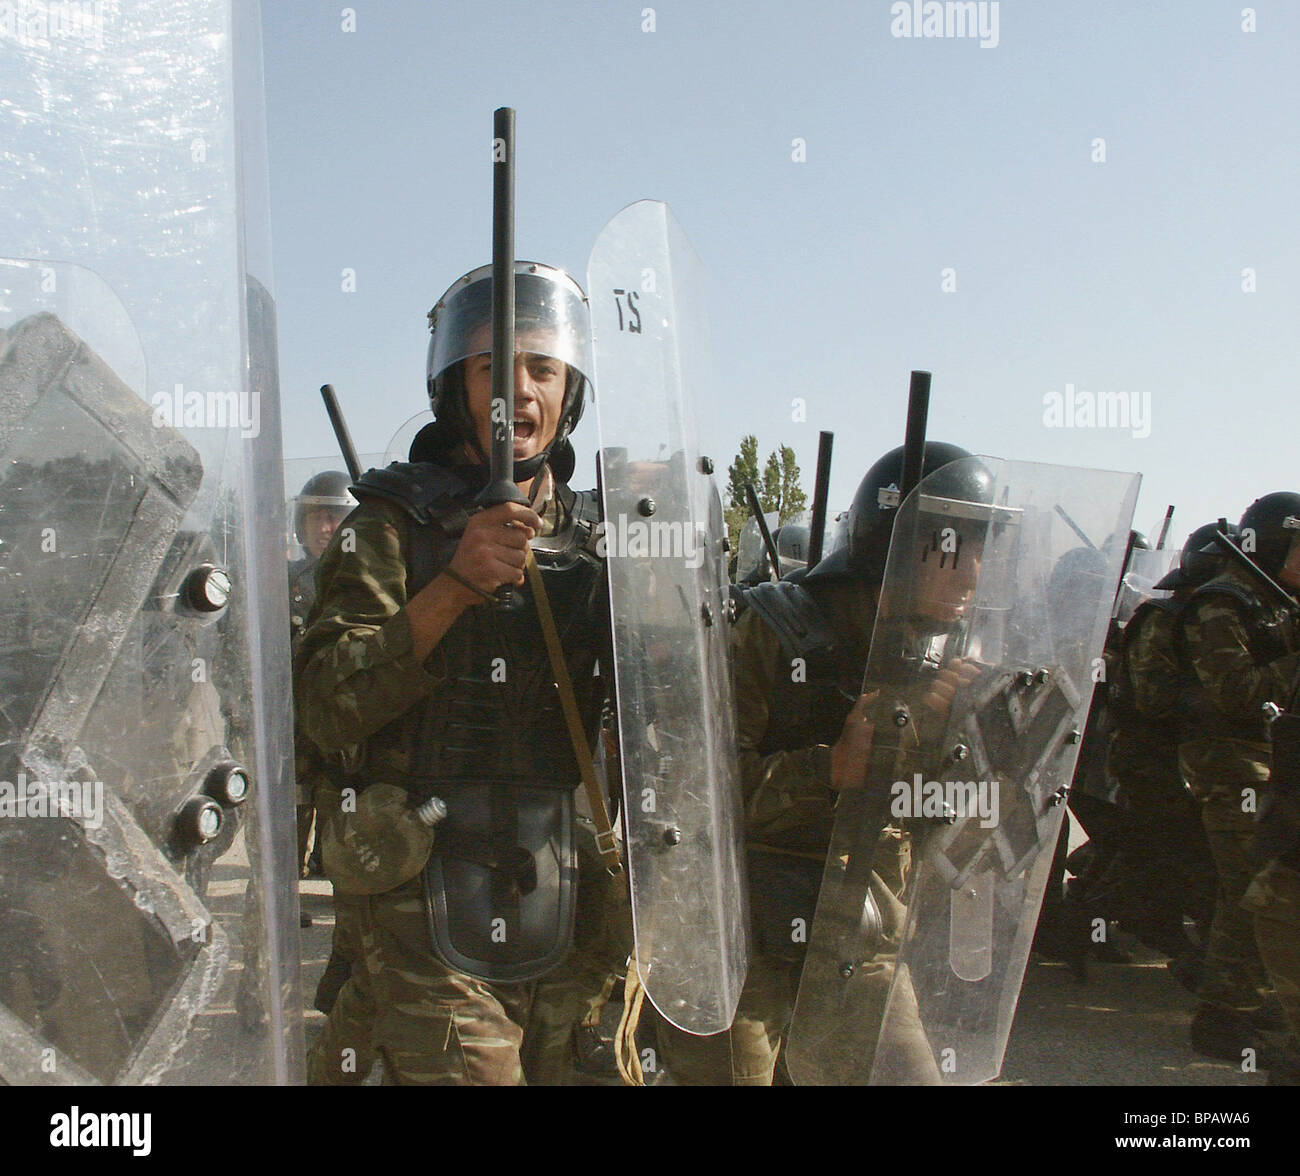 Post-election clashes of opposition and law enforcement bodies in Baku - Stock Image